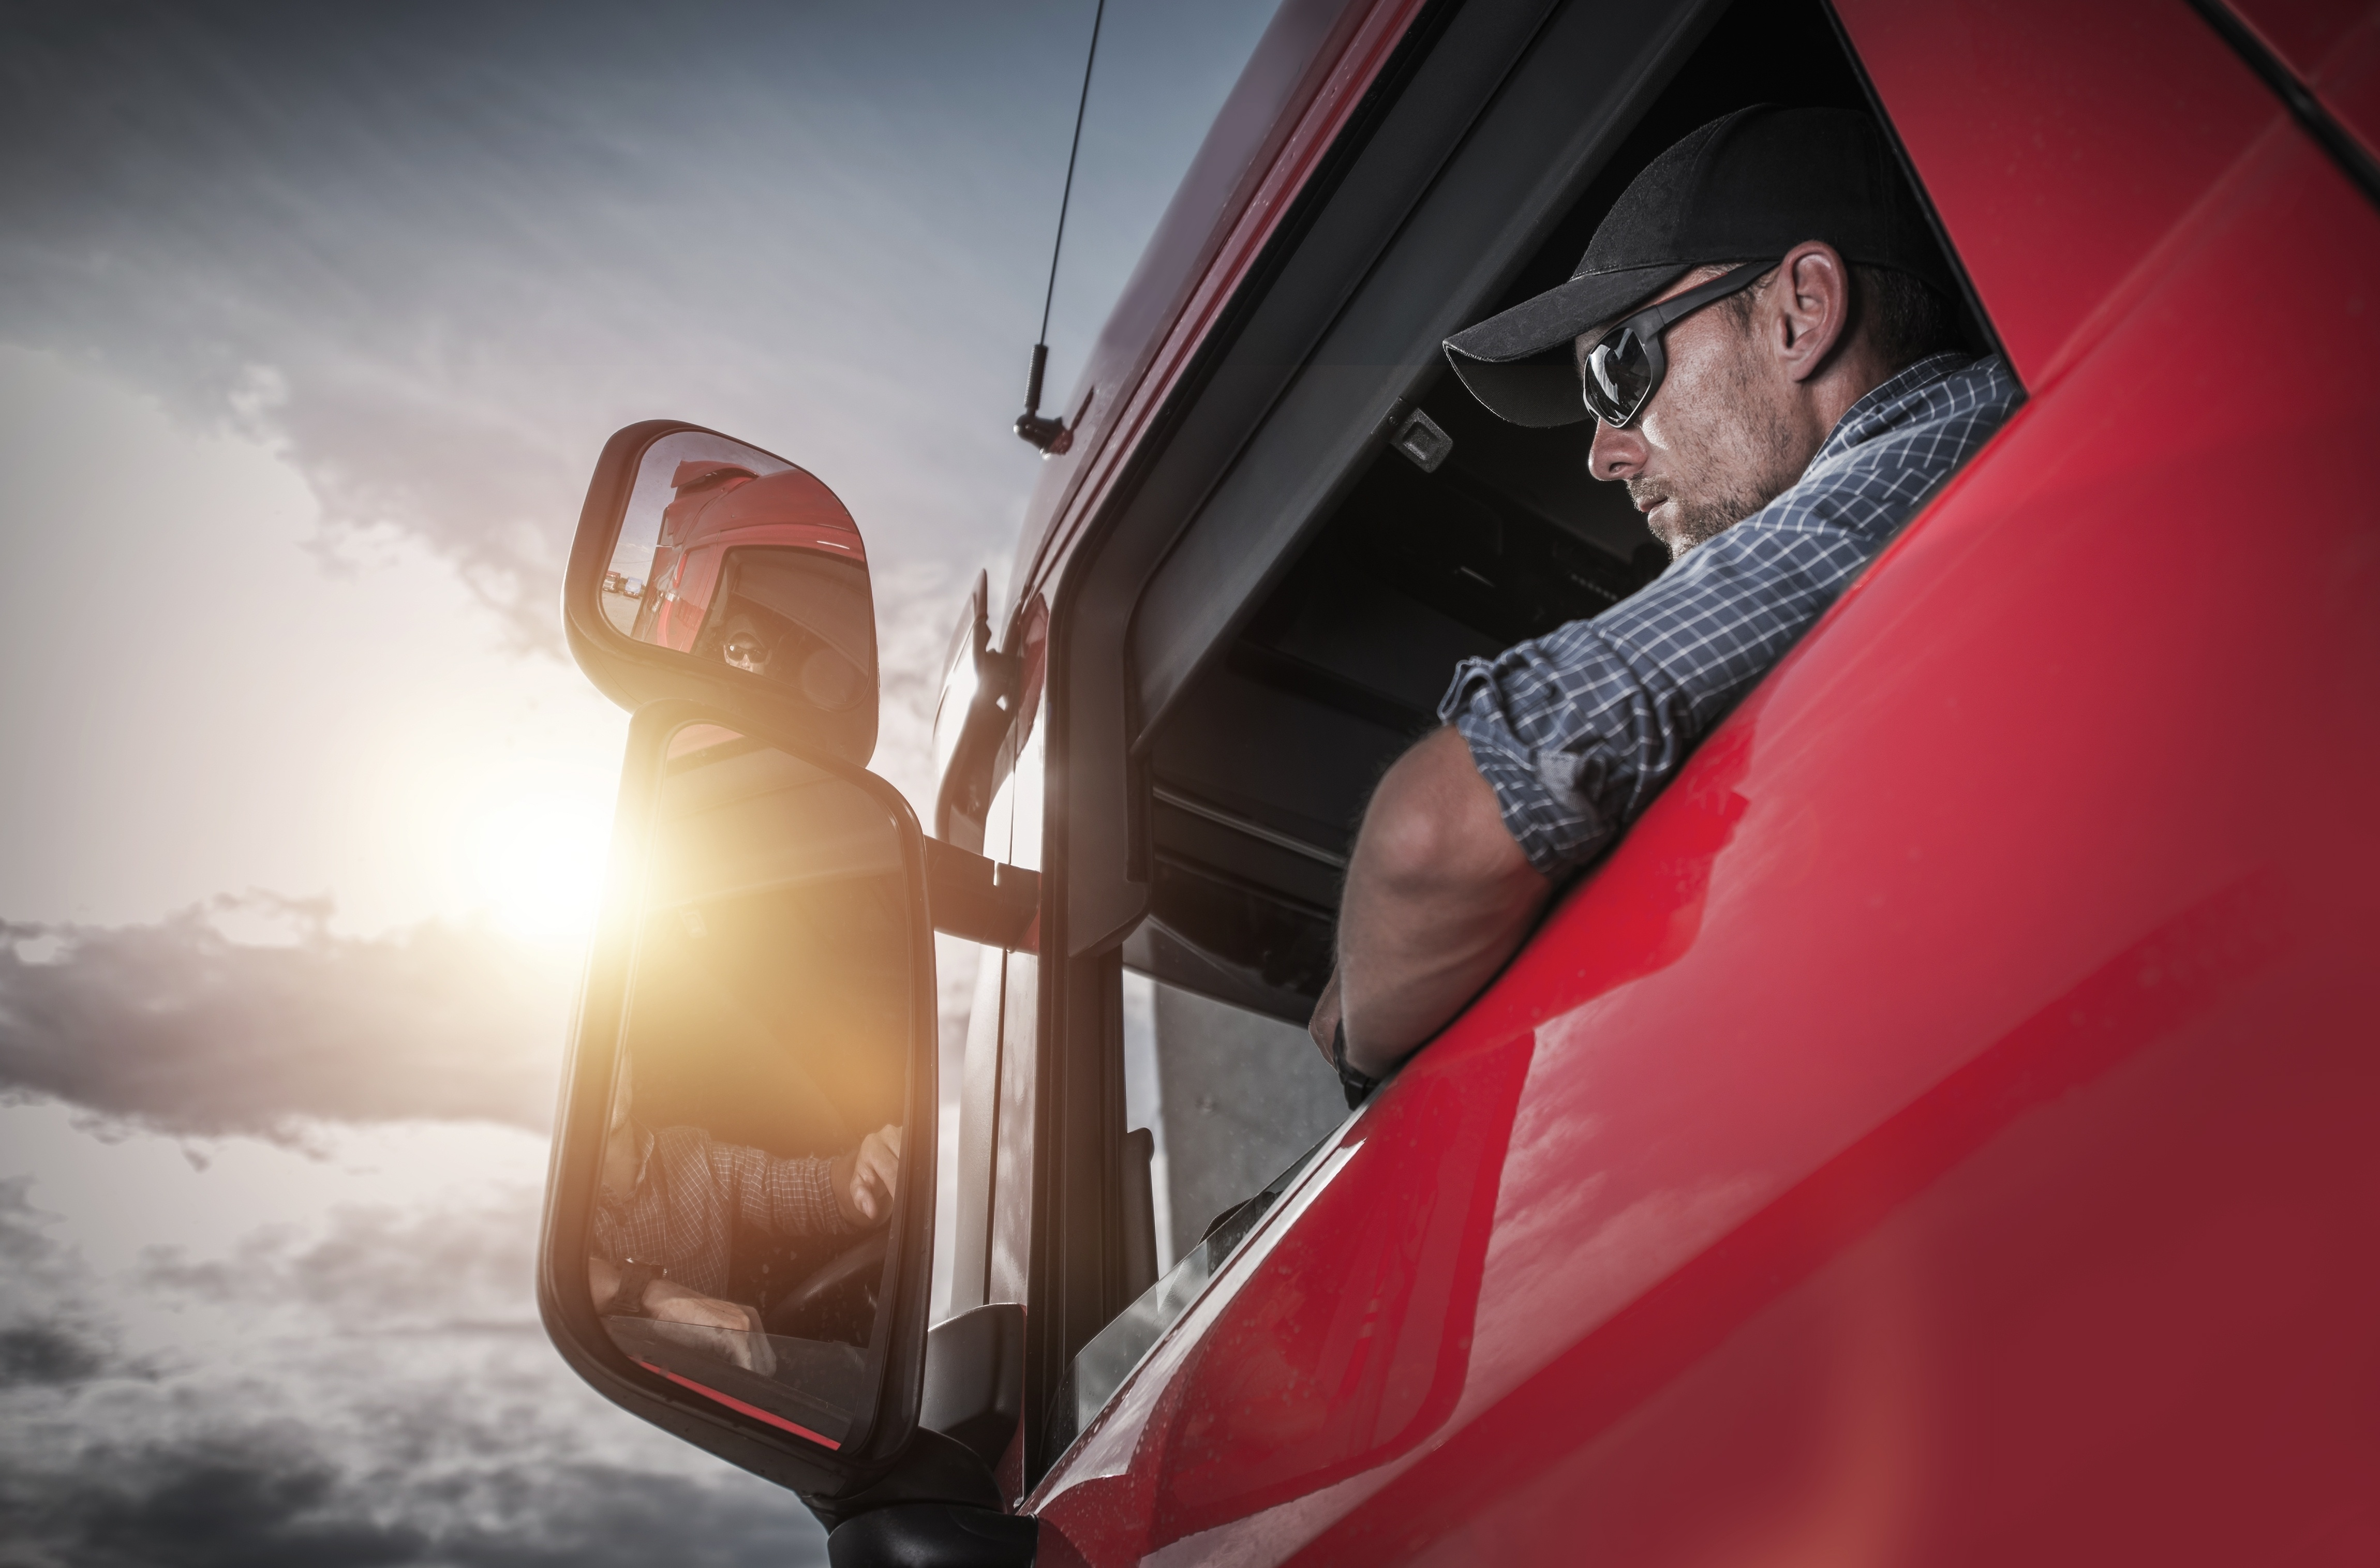 truck driver looking out the window of his truck